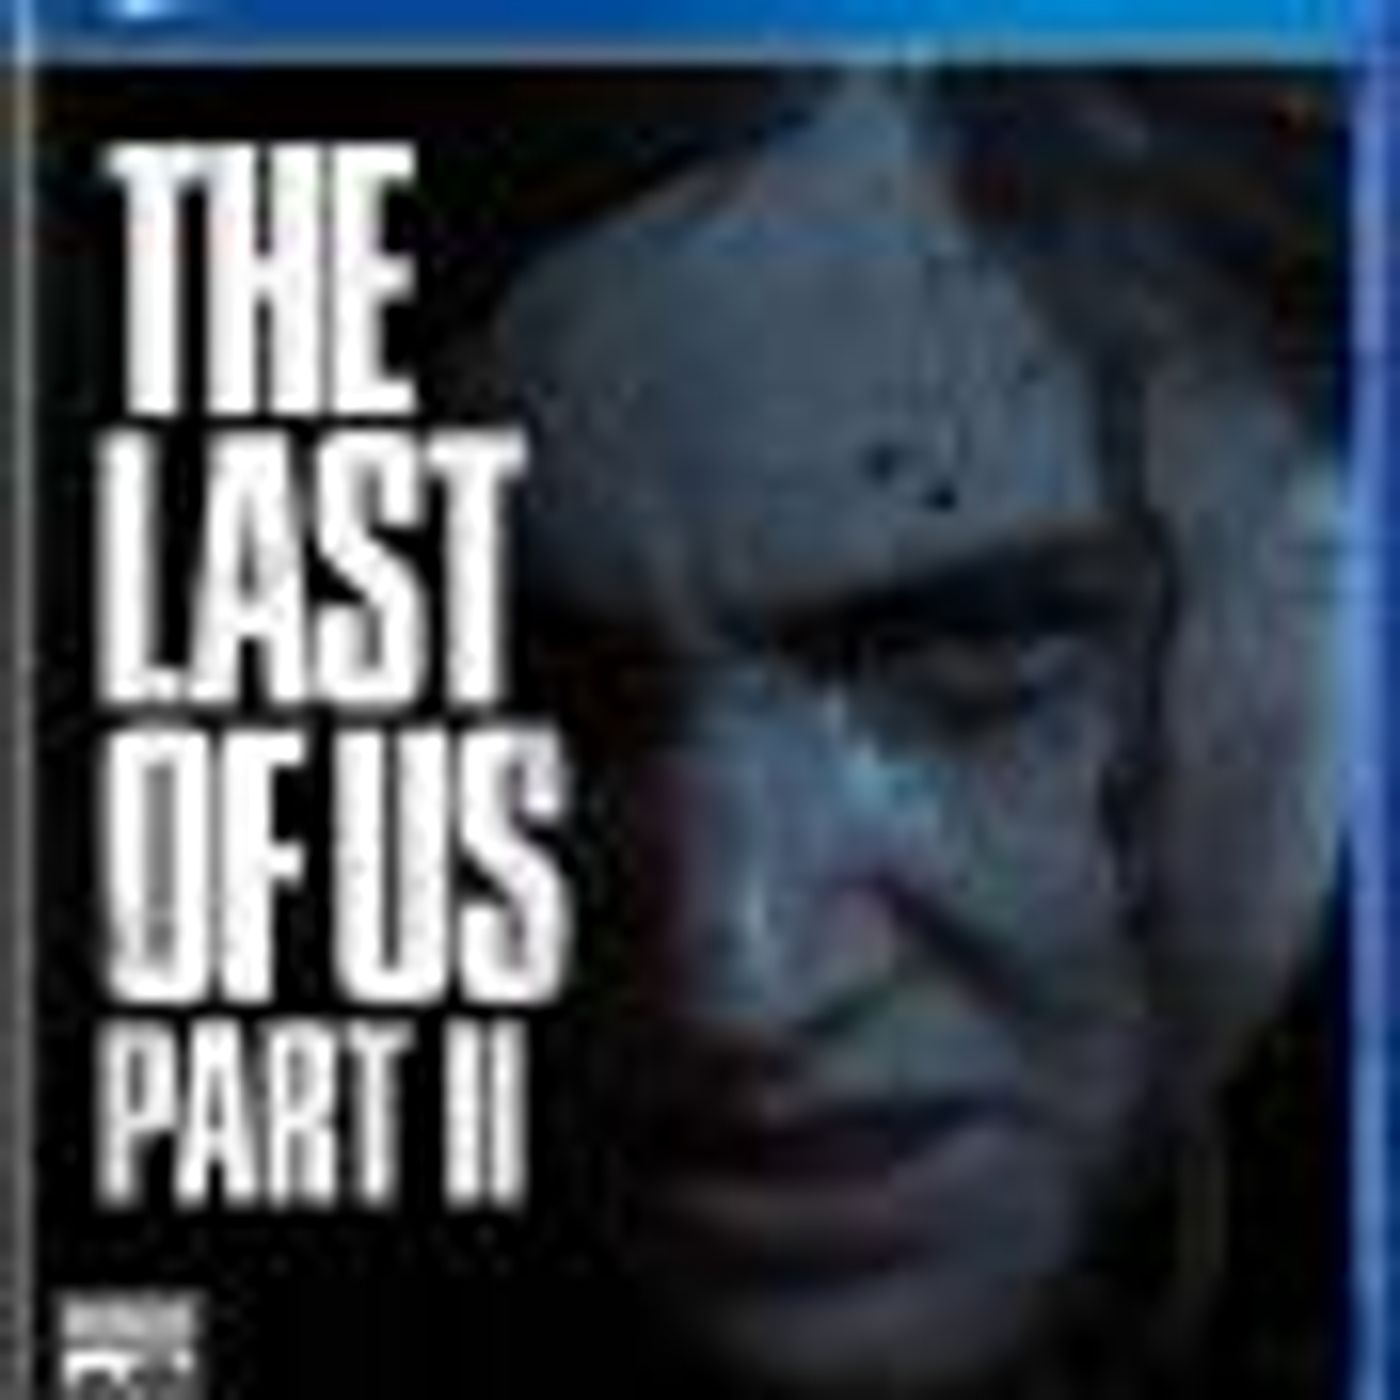 Episode 90: Jace is done with The Last of Us Part 2